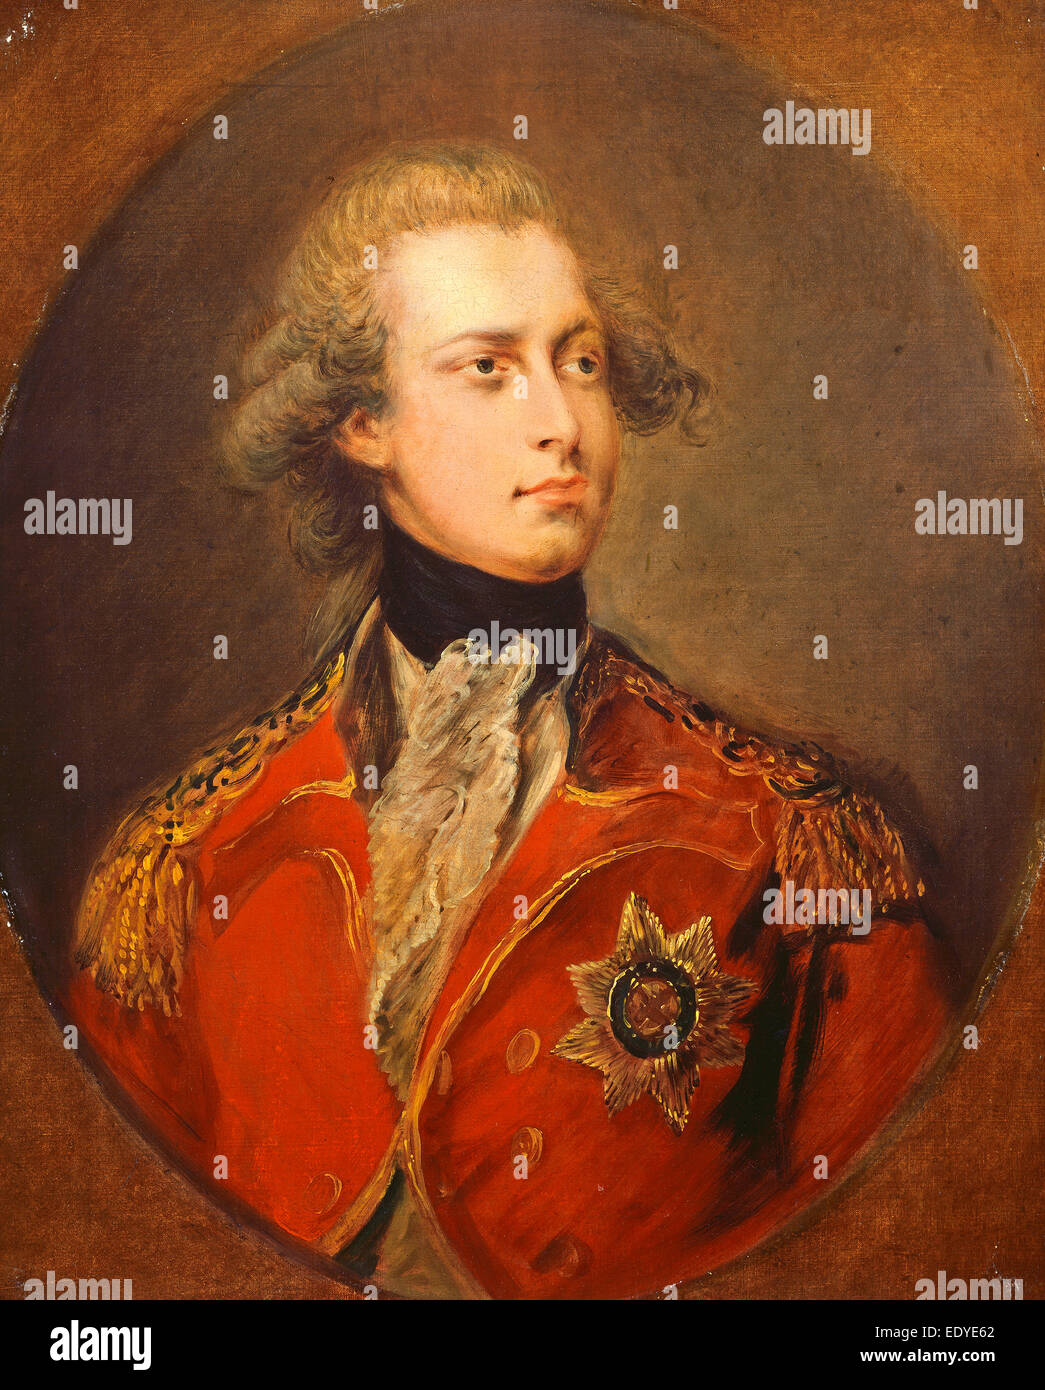 Gainsborough Dupont (British, 1754 - 1797), George IV as Prince of Wales, 1781, oil on canvas - Stock Image